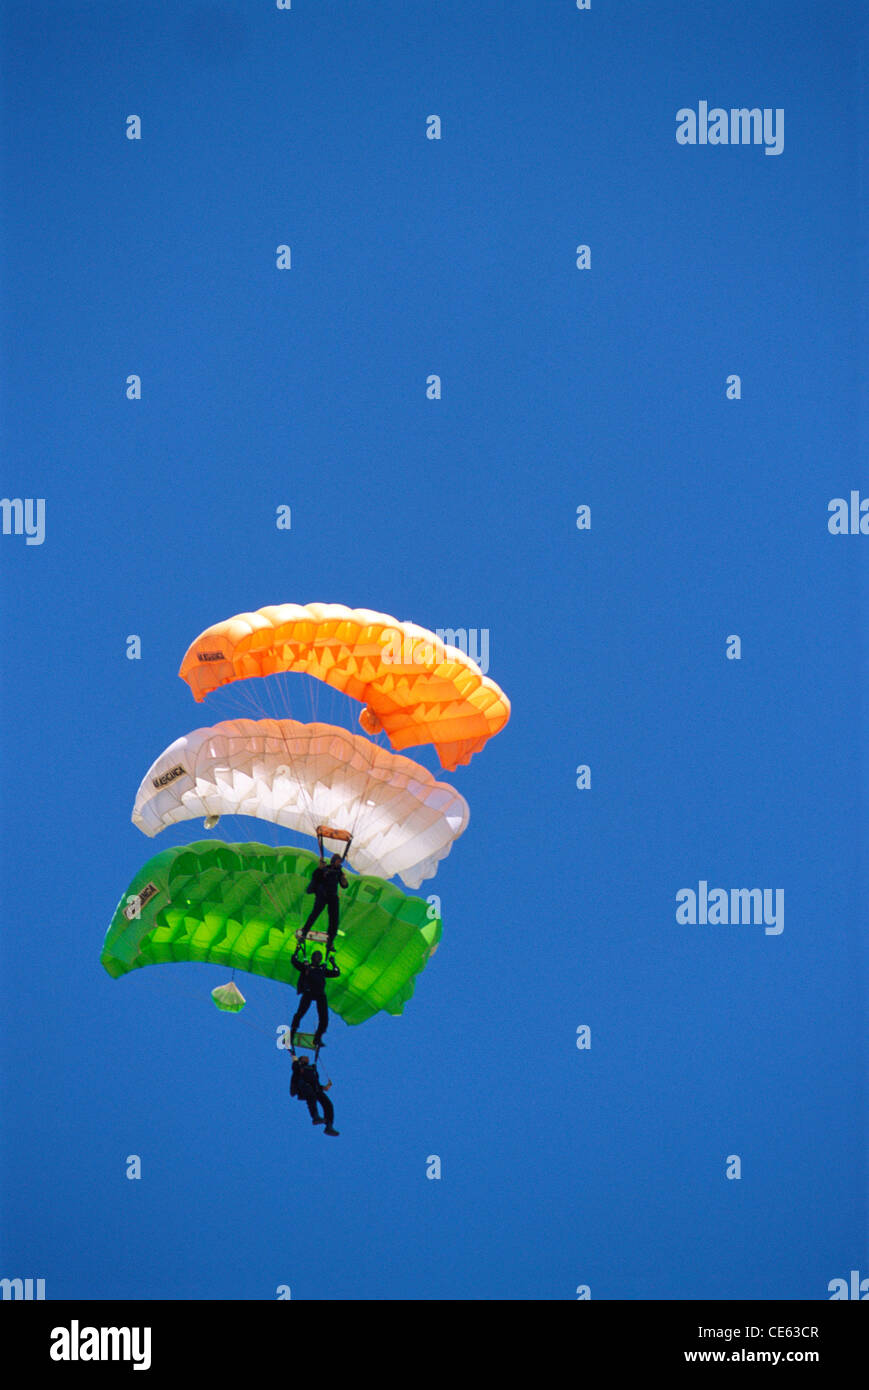 three men paragliding with parachutes of colours of indian flag